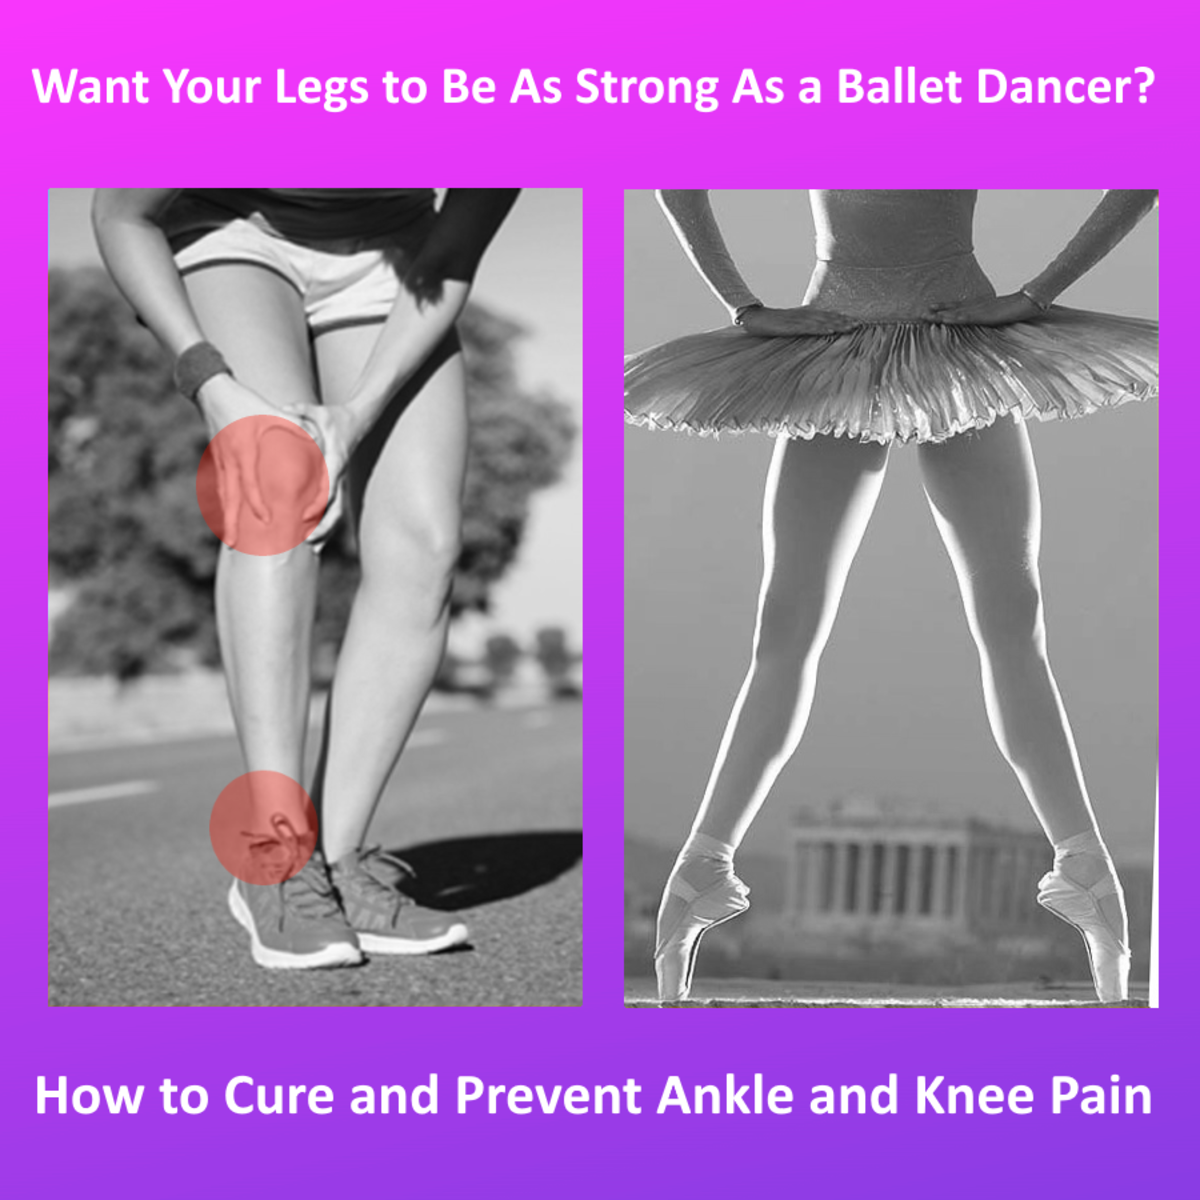 How to Cure and Prevent Ankle and Knee Pain